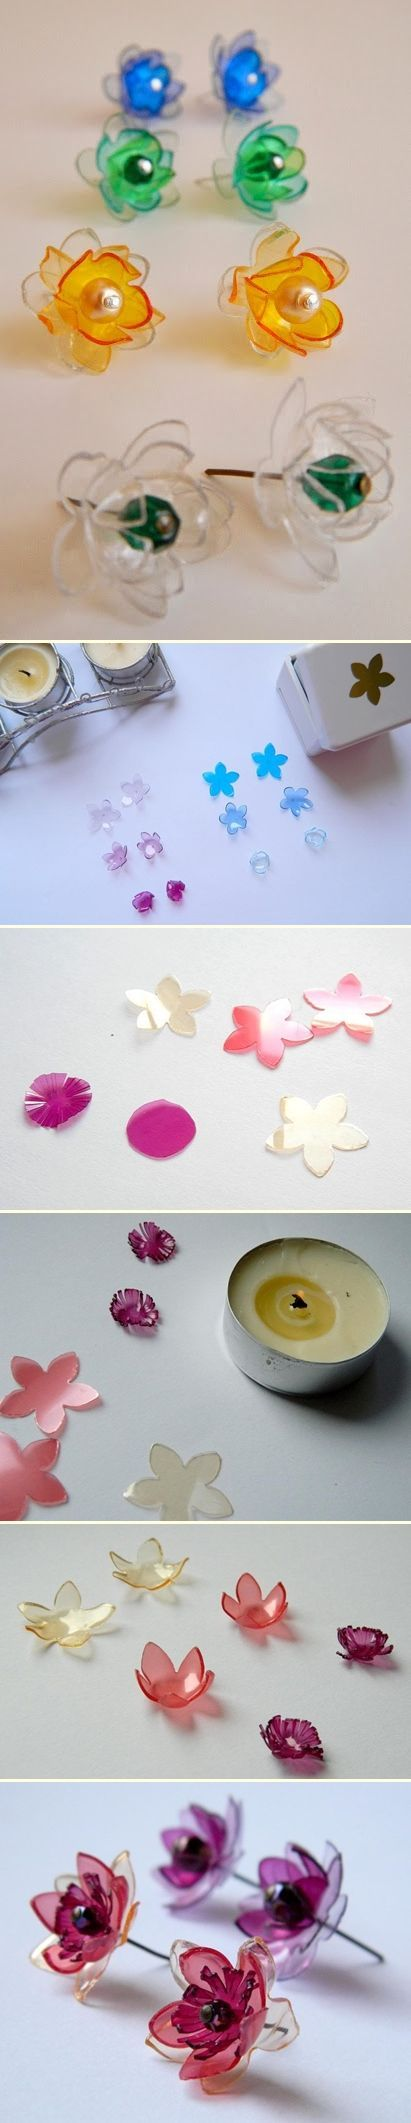 DIY Flower Earrings from Plastic Bottles great for all ages.If you have pierced ears here's a cute earring.